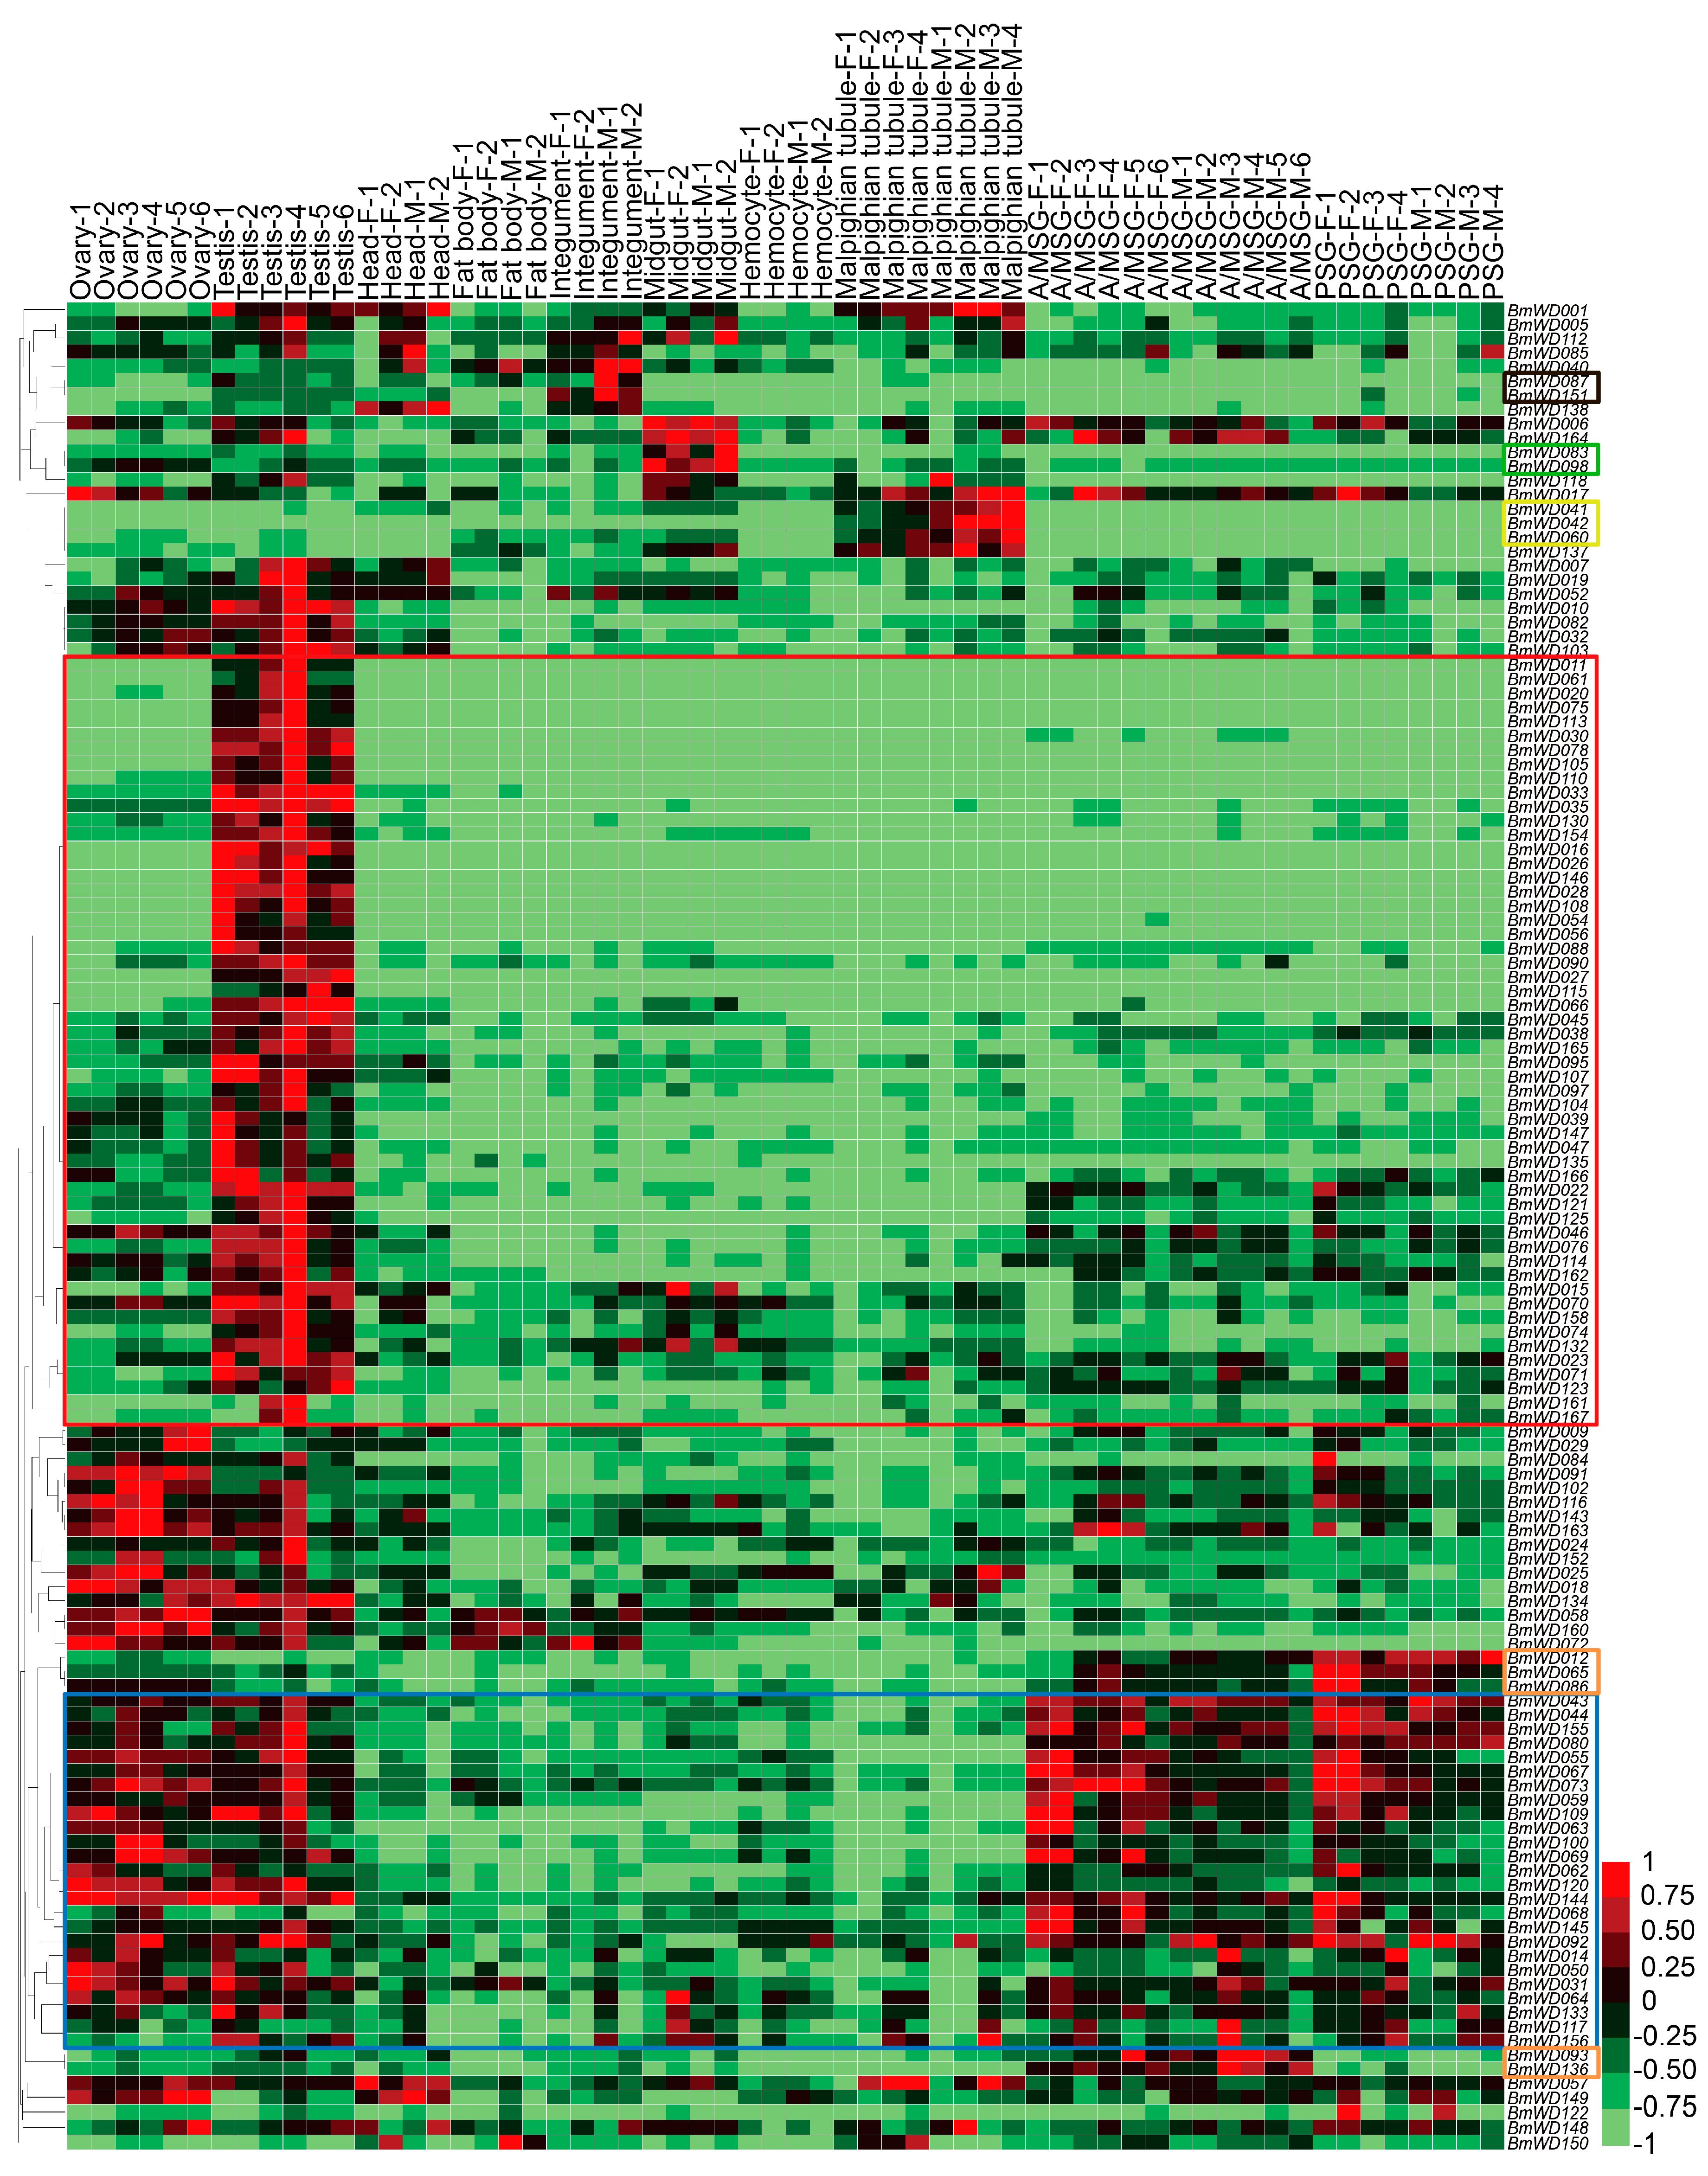 Ijms free full text genome wide identification and ijms 19 00527 g008 publicscrutiny Image collections